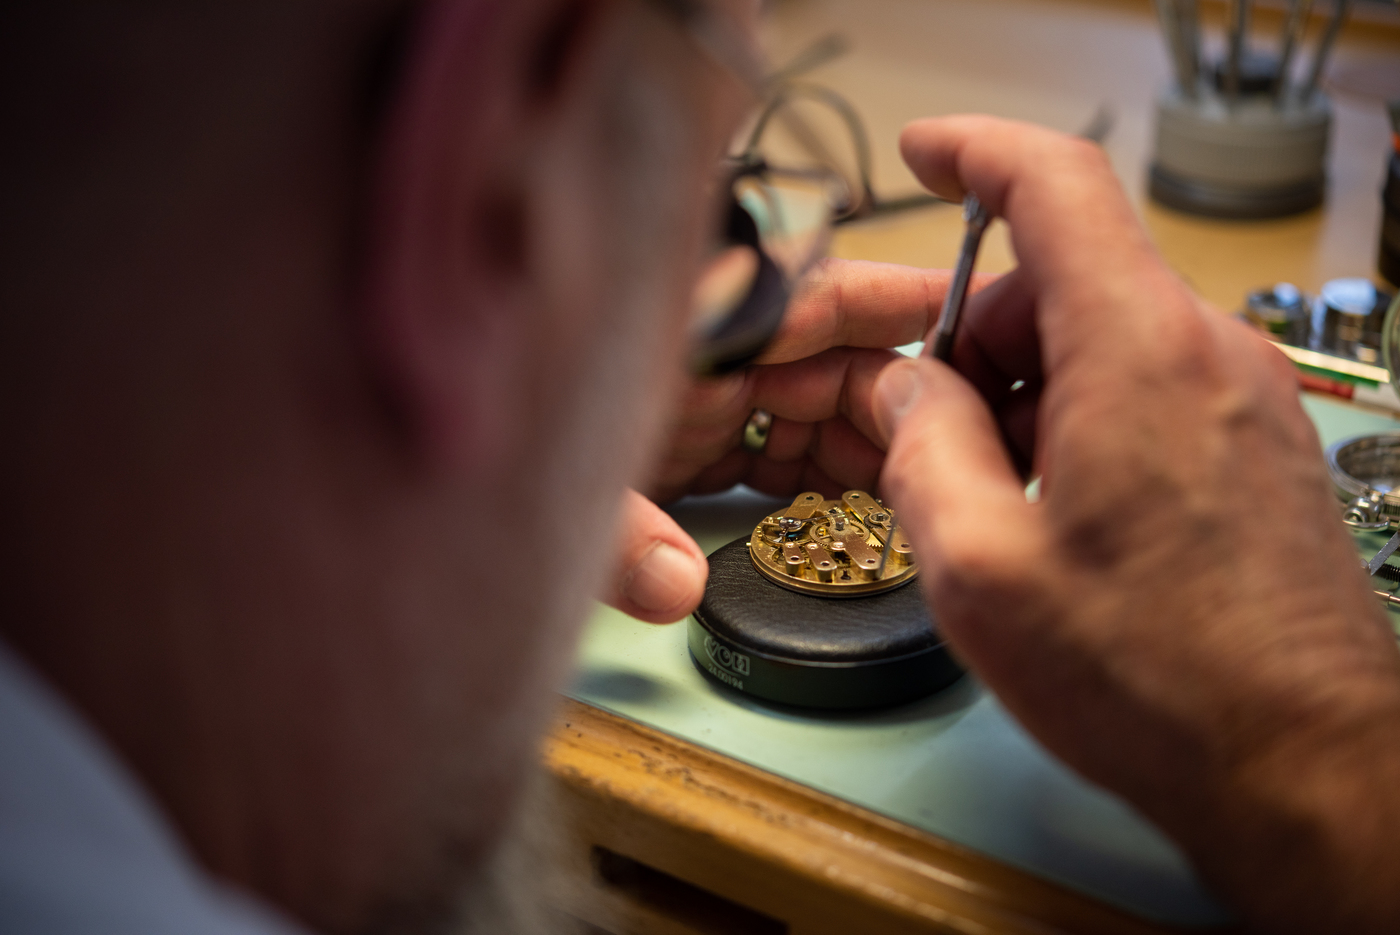 Longines Corporate Event: A collector finds the oldest Longines watch known to date, a historical discovery for the brand 13